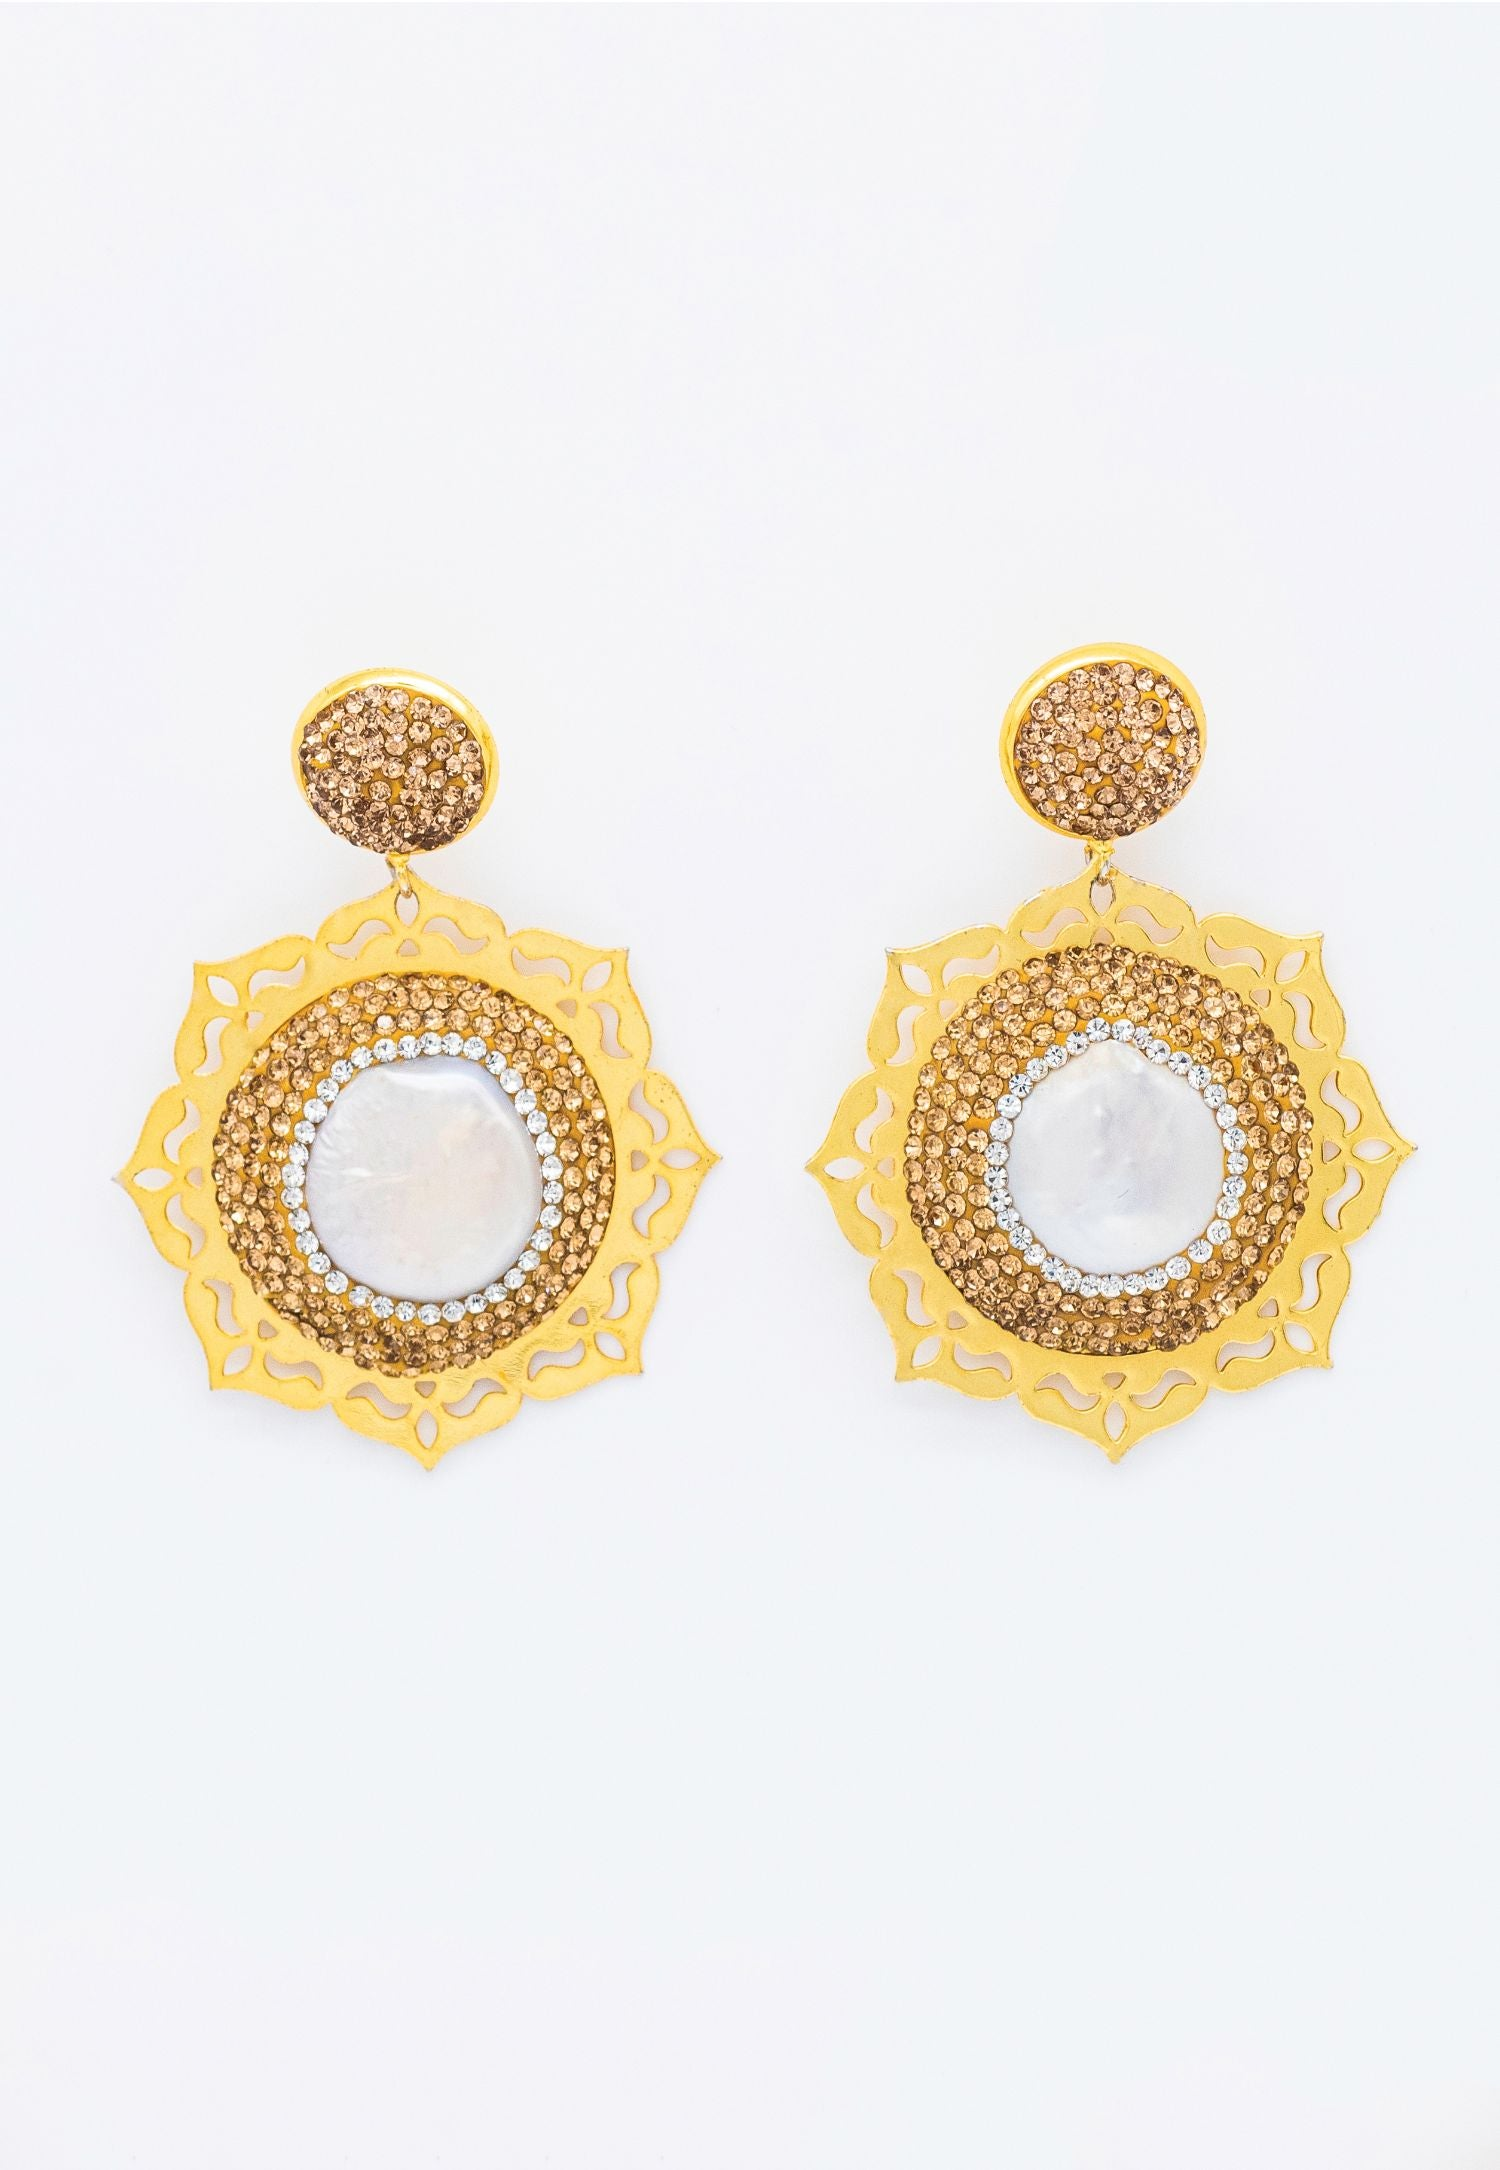 MOTHER OF PEARL, GOLD PAVÉ RHINESTONE EARRINGS